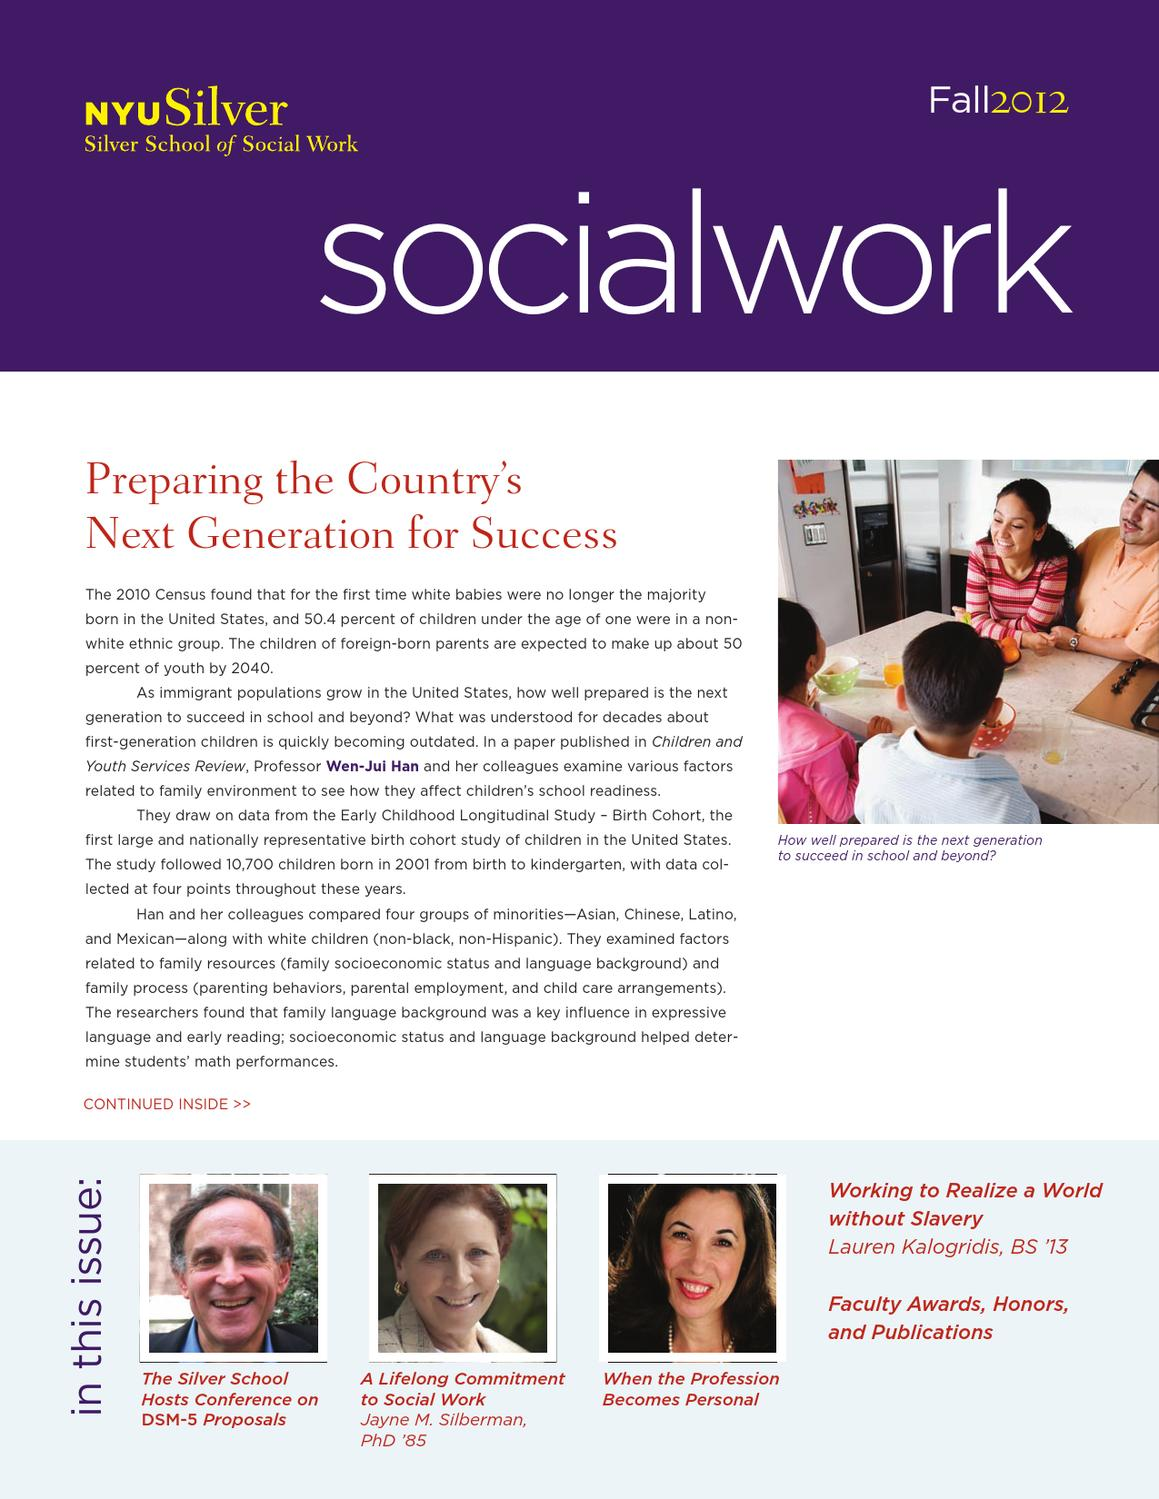 nyu silver fall newsletter by nyu silver school of social  nyu silver fall 2012 newsletter by nyu silver school of social work issuu